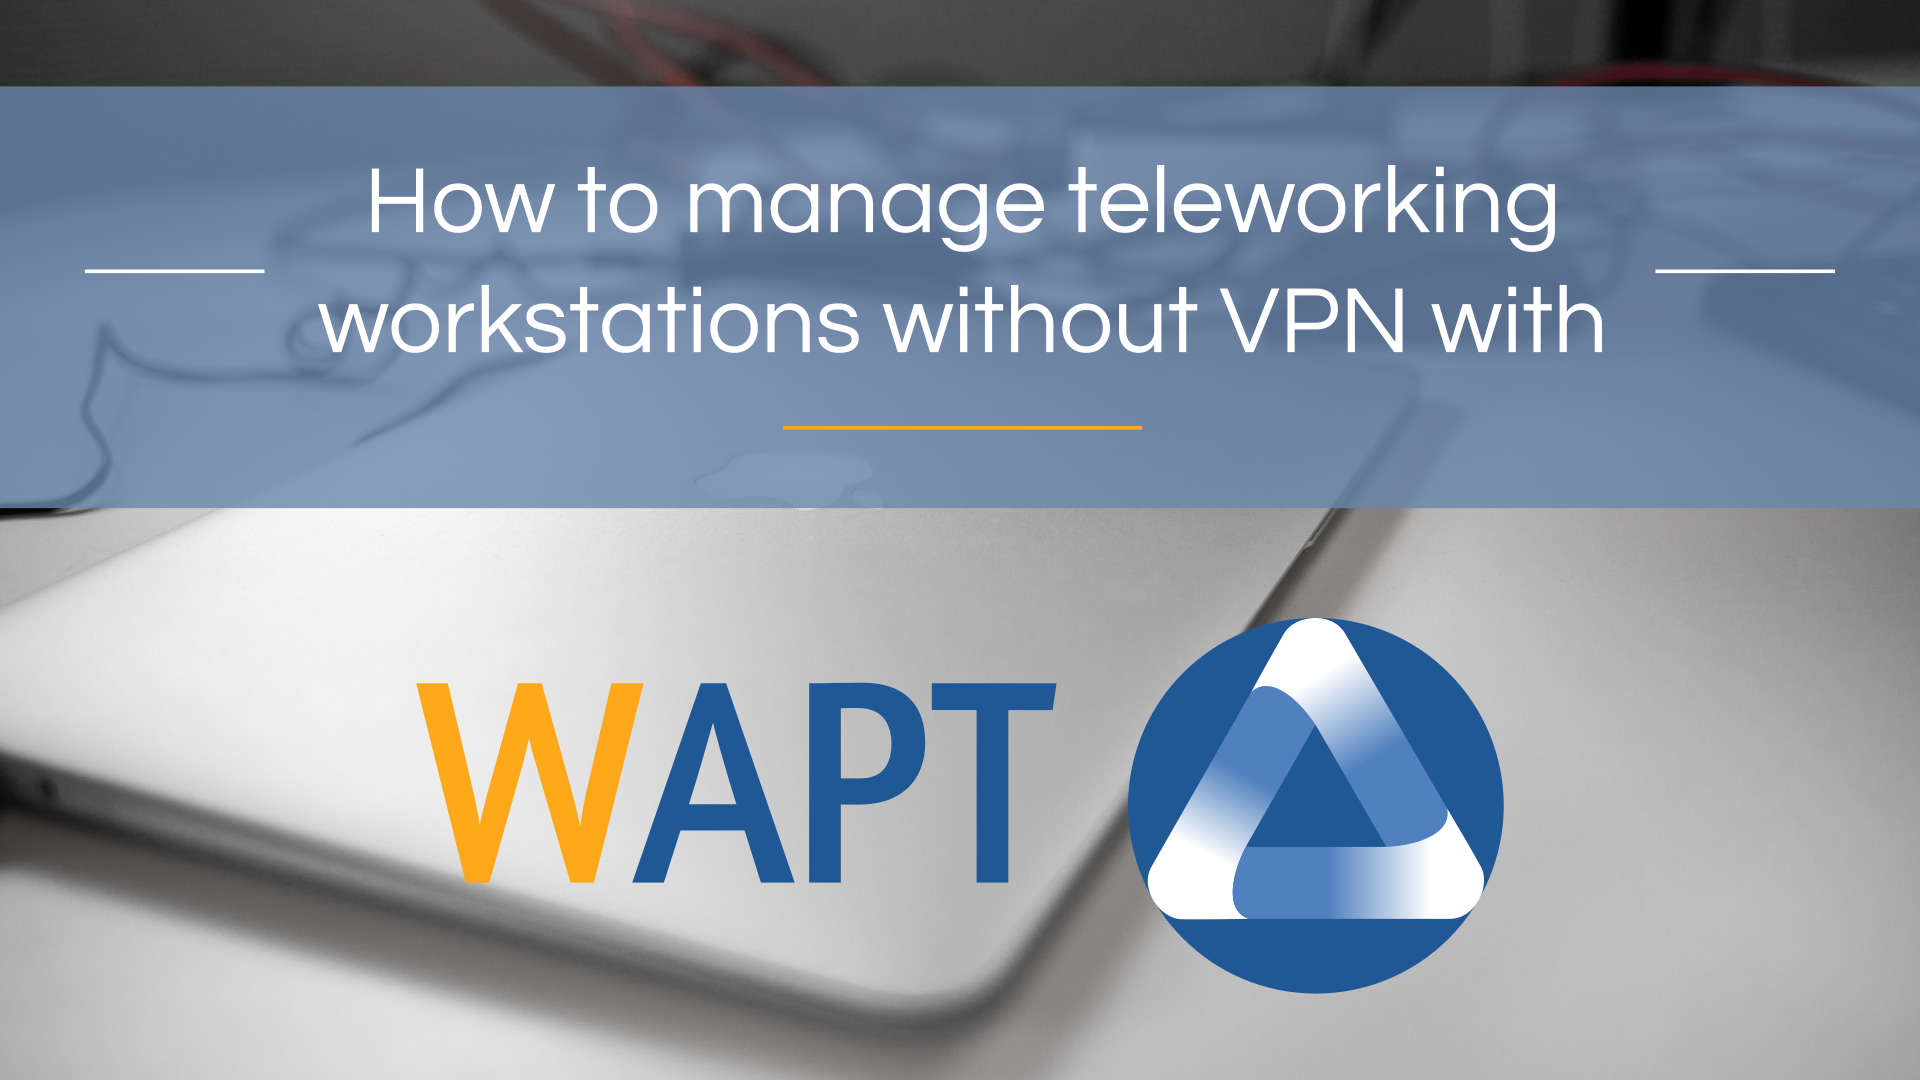 How to manage teleworking workstations without VPN with WAPT?